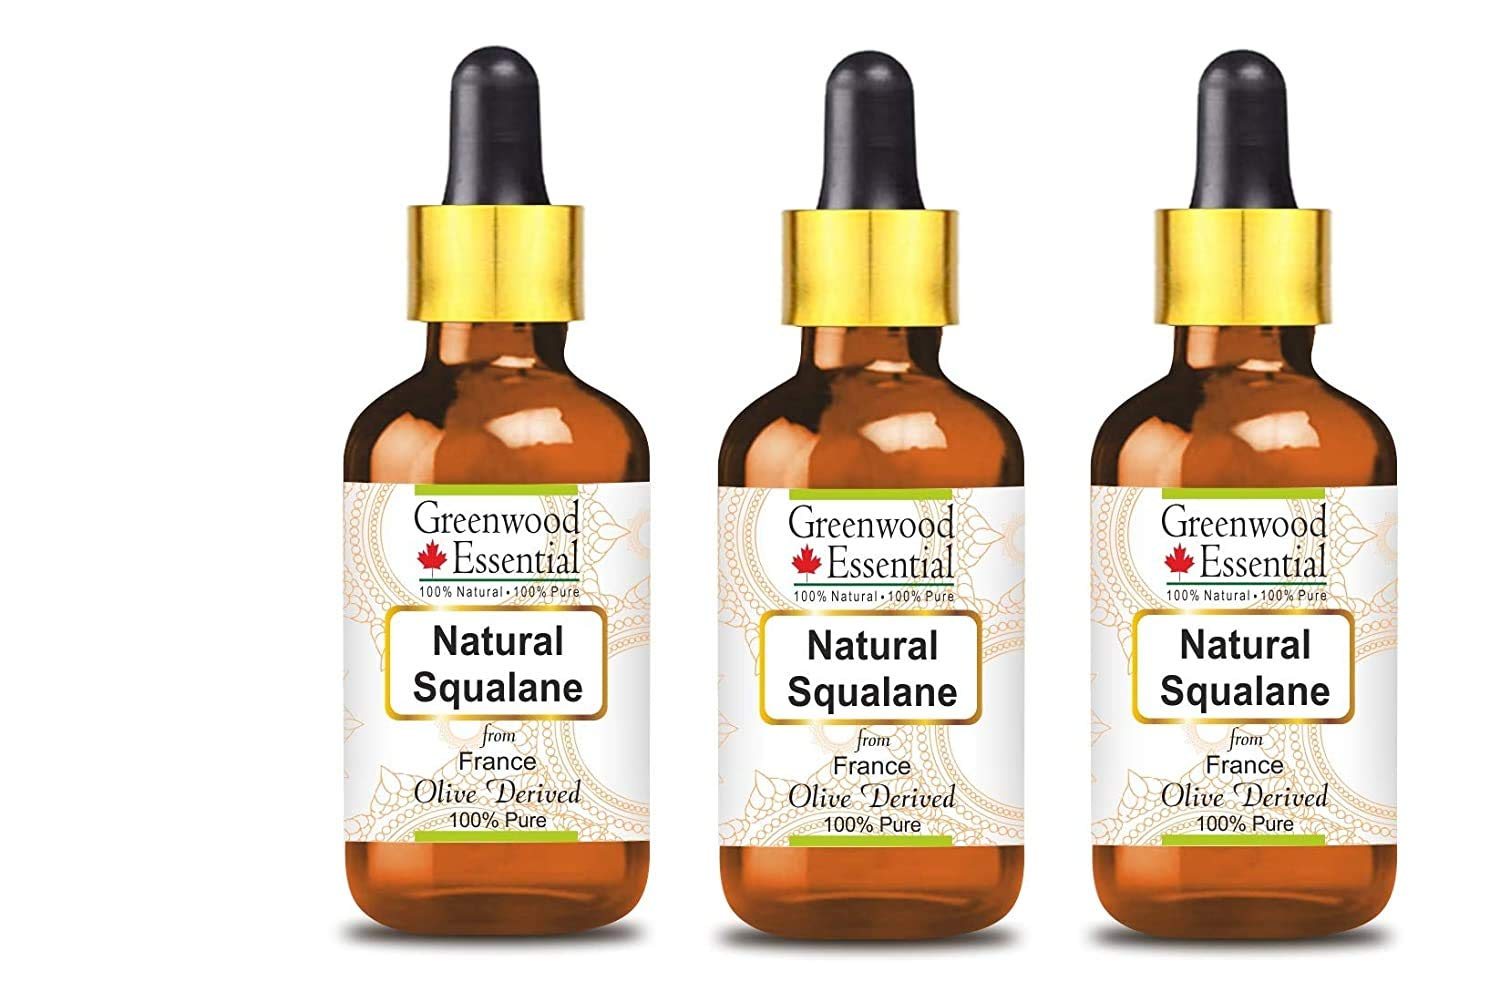 Greenwood Essential Great interest Pure Natural Squalane Award-winning store from Oil derived Oliv